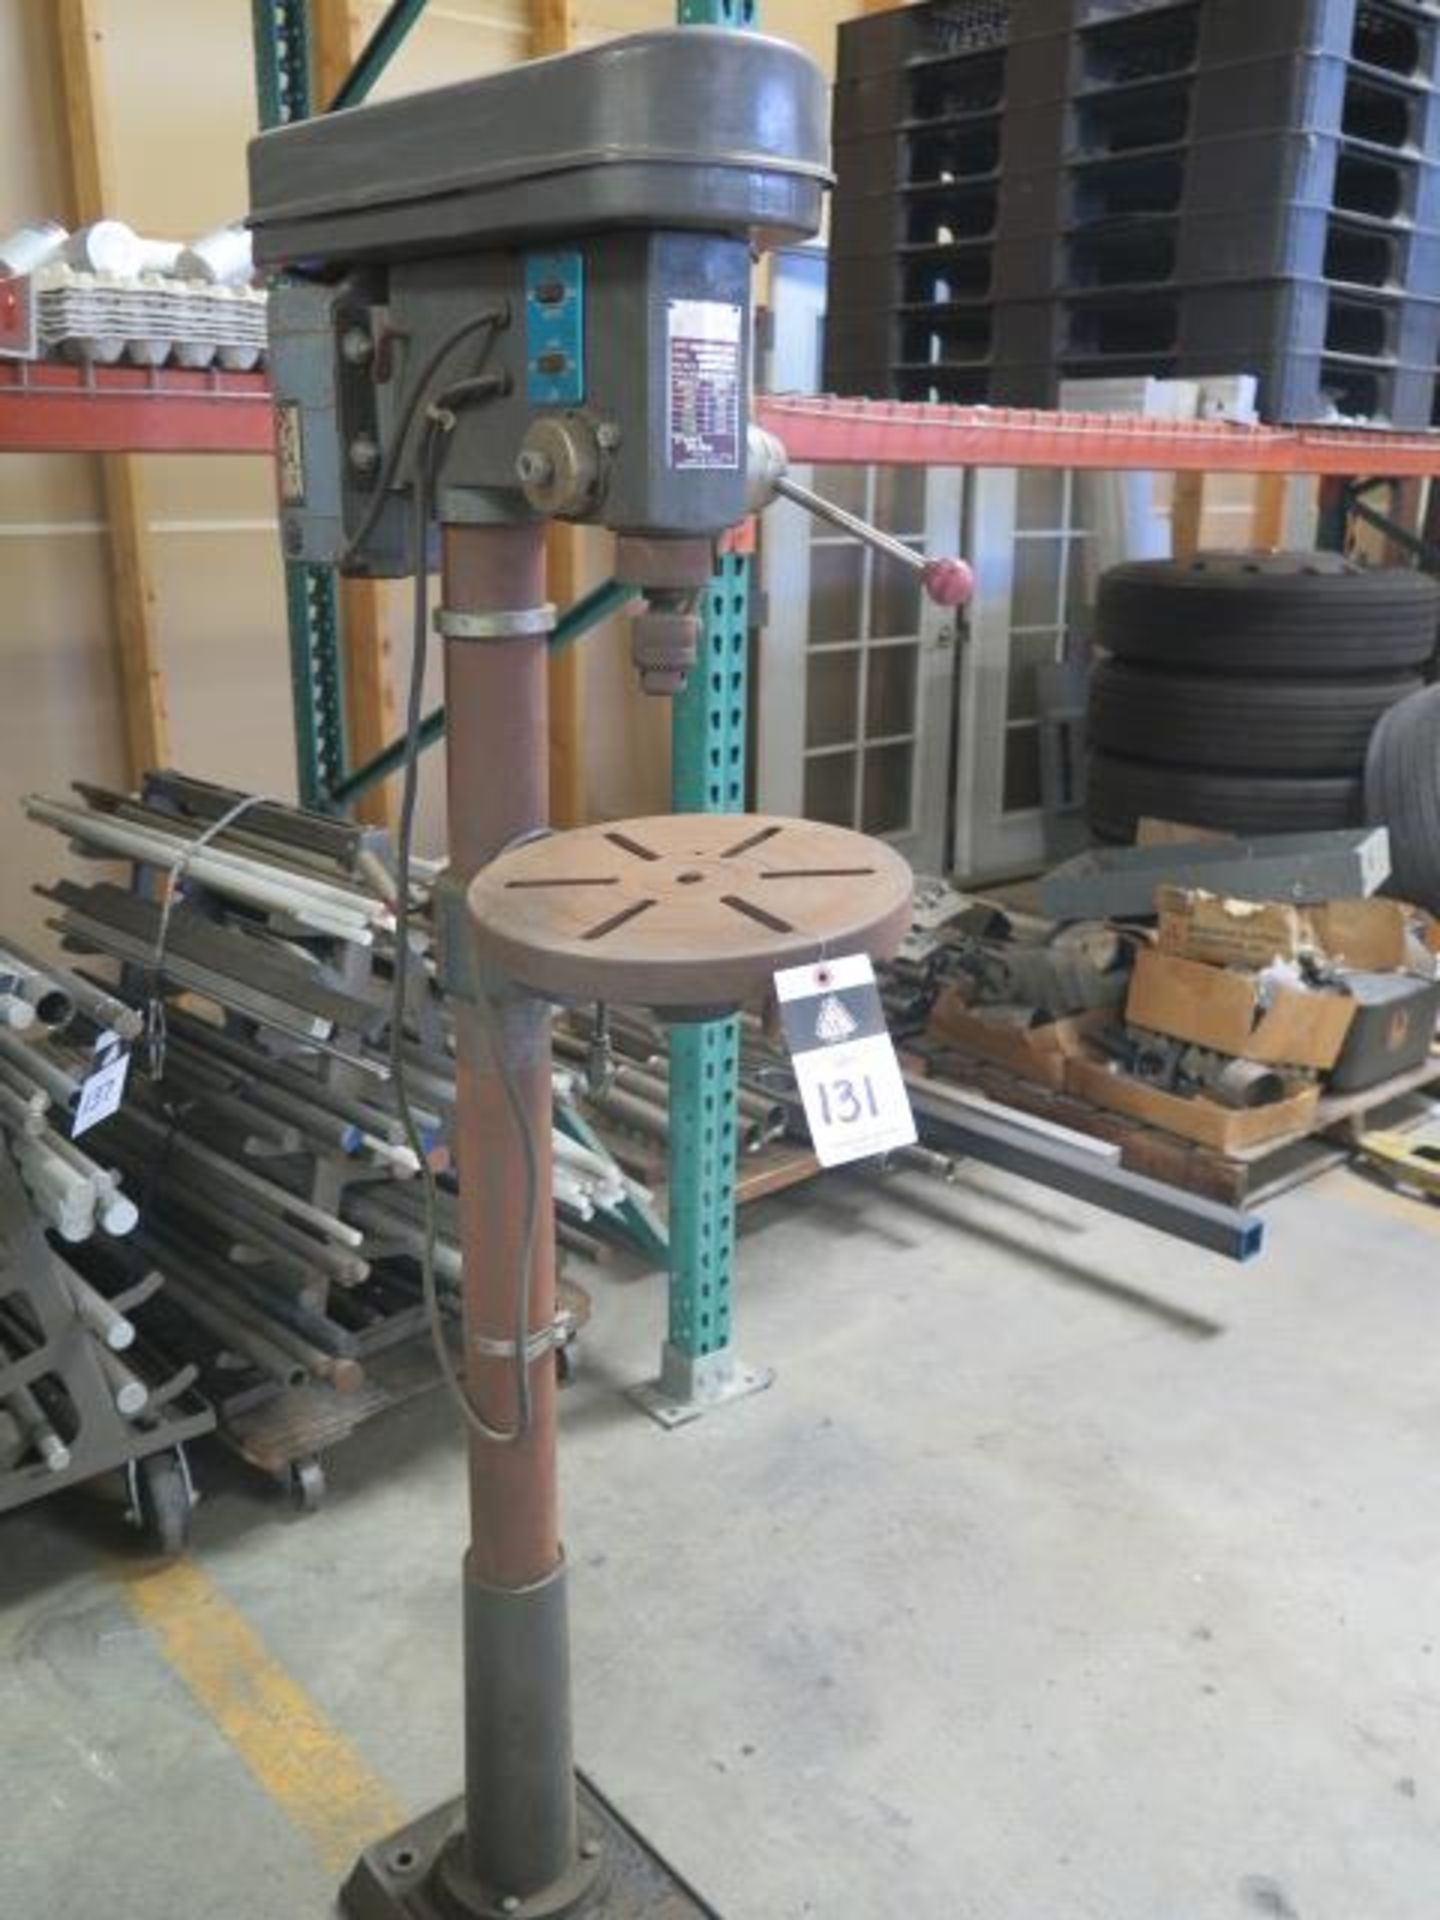 Test Rite Pedestal Drill Press (SOLD AS-IS - NO WARRANTY) - Image 2 of 6